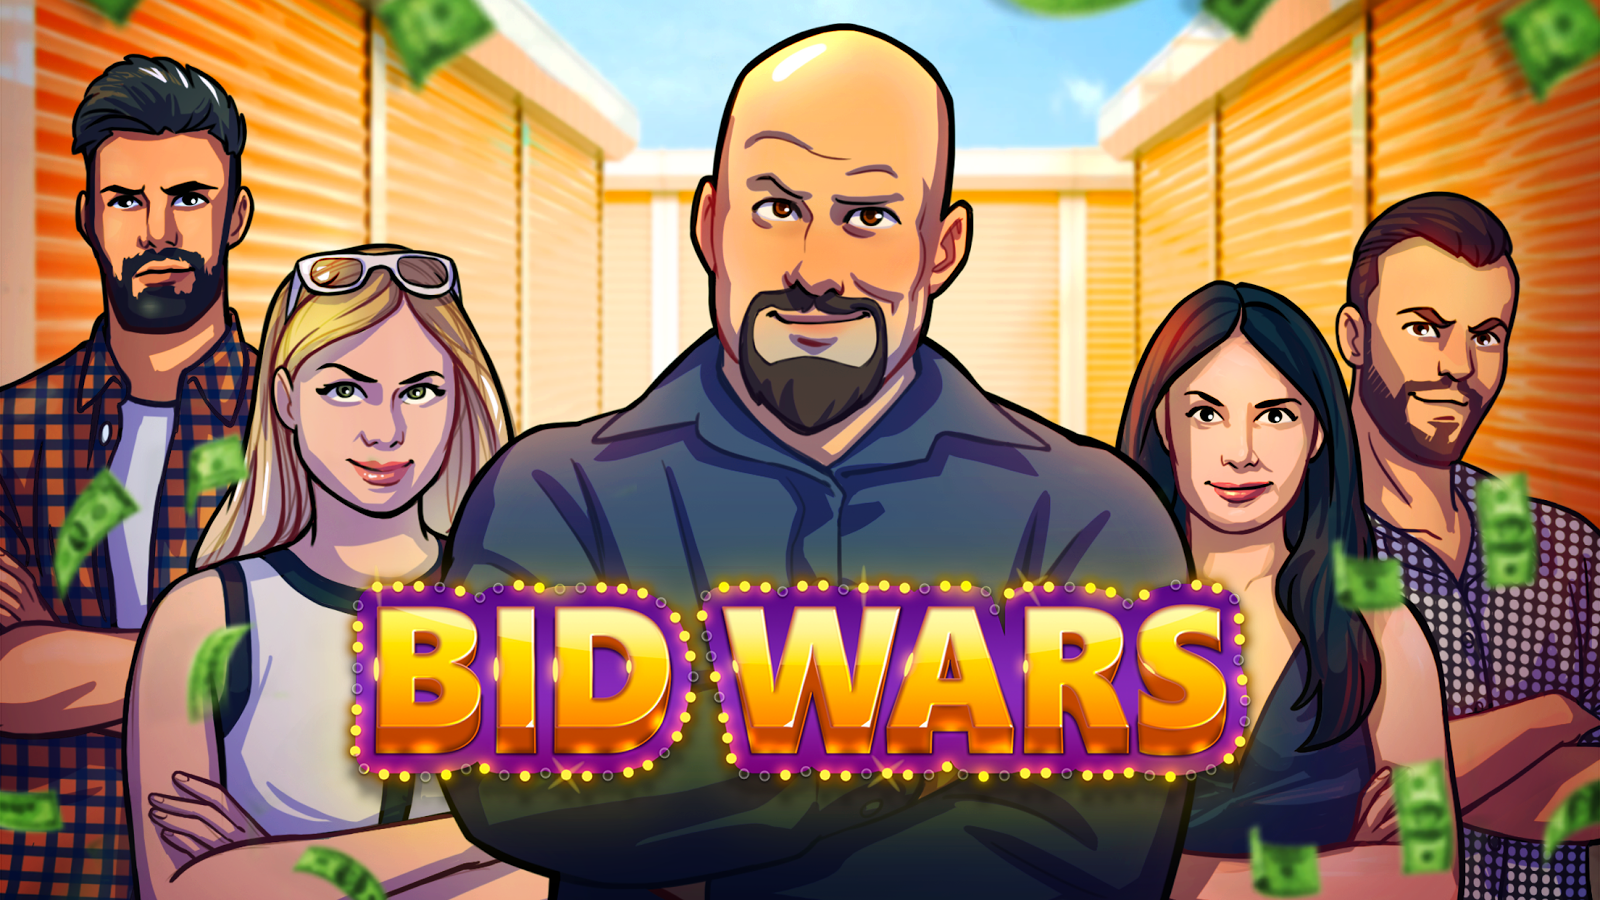 Bid Wars - Storage Auctions & Pawn Shop Game Screenshot 5